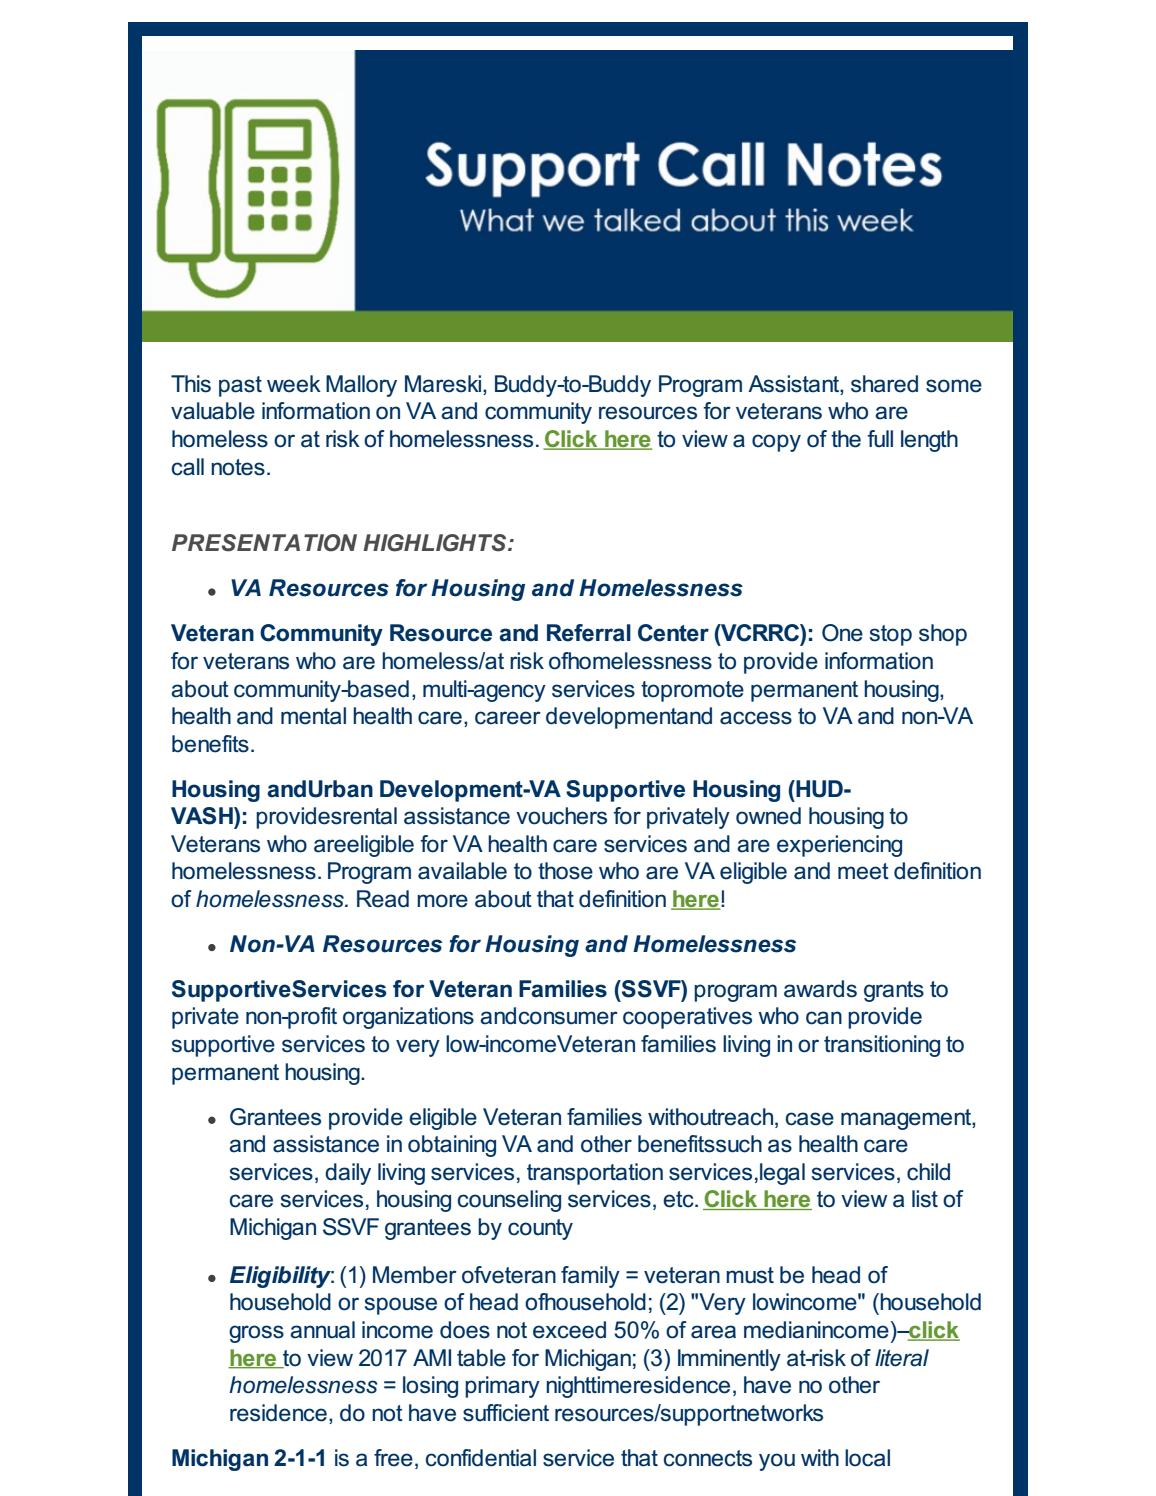 Support Call Notes | VA and Non-VA Resources for Veterans at